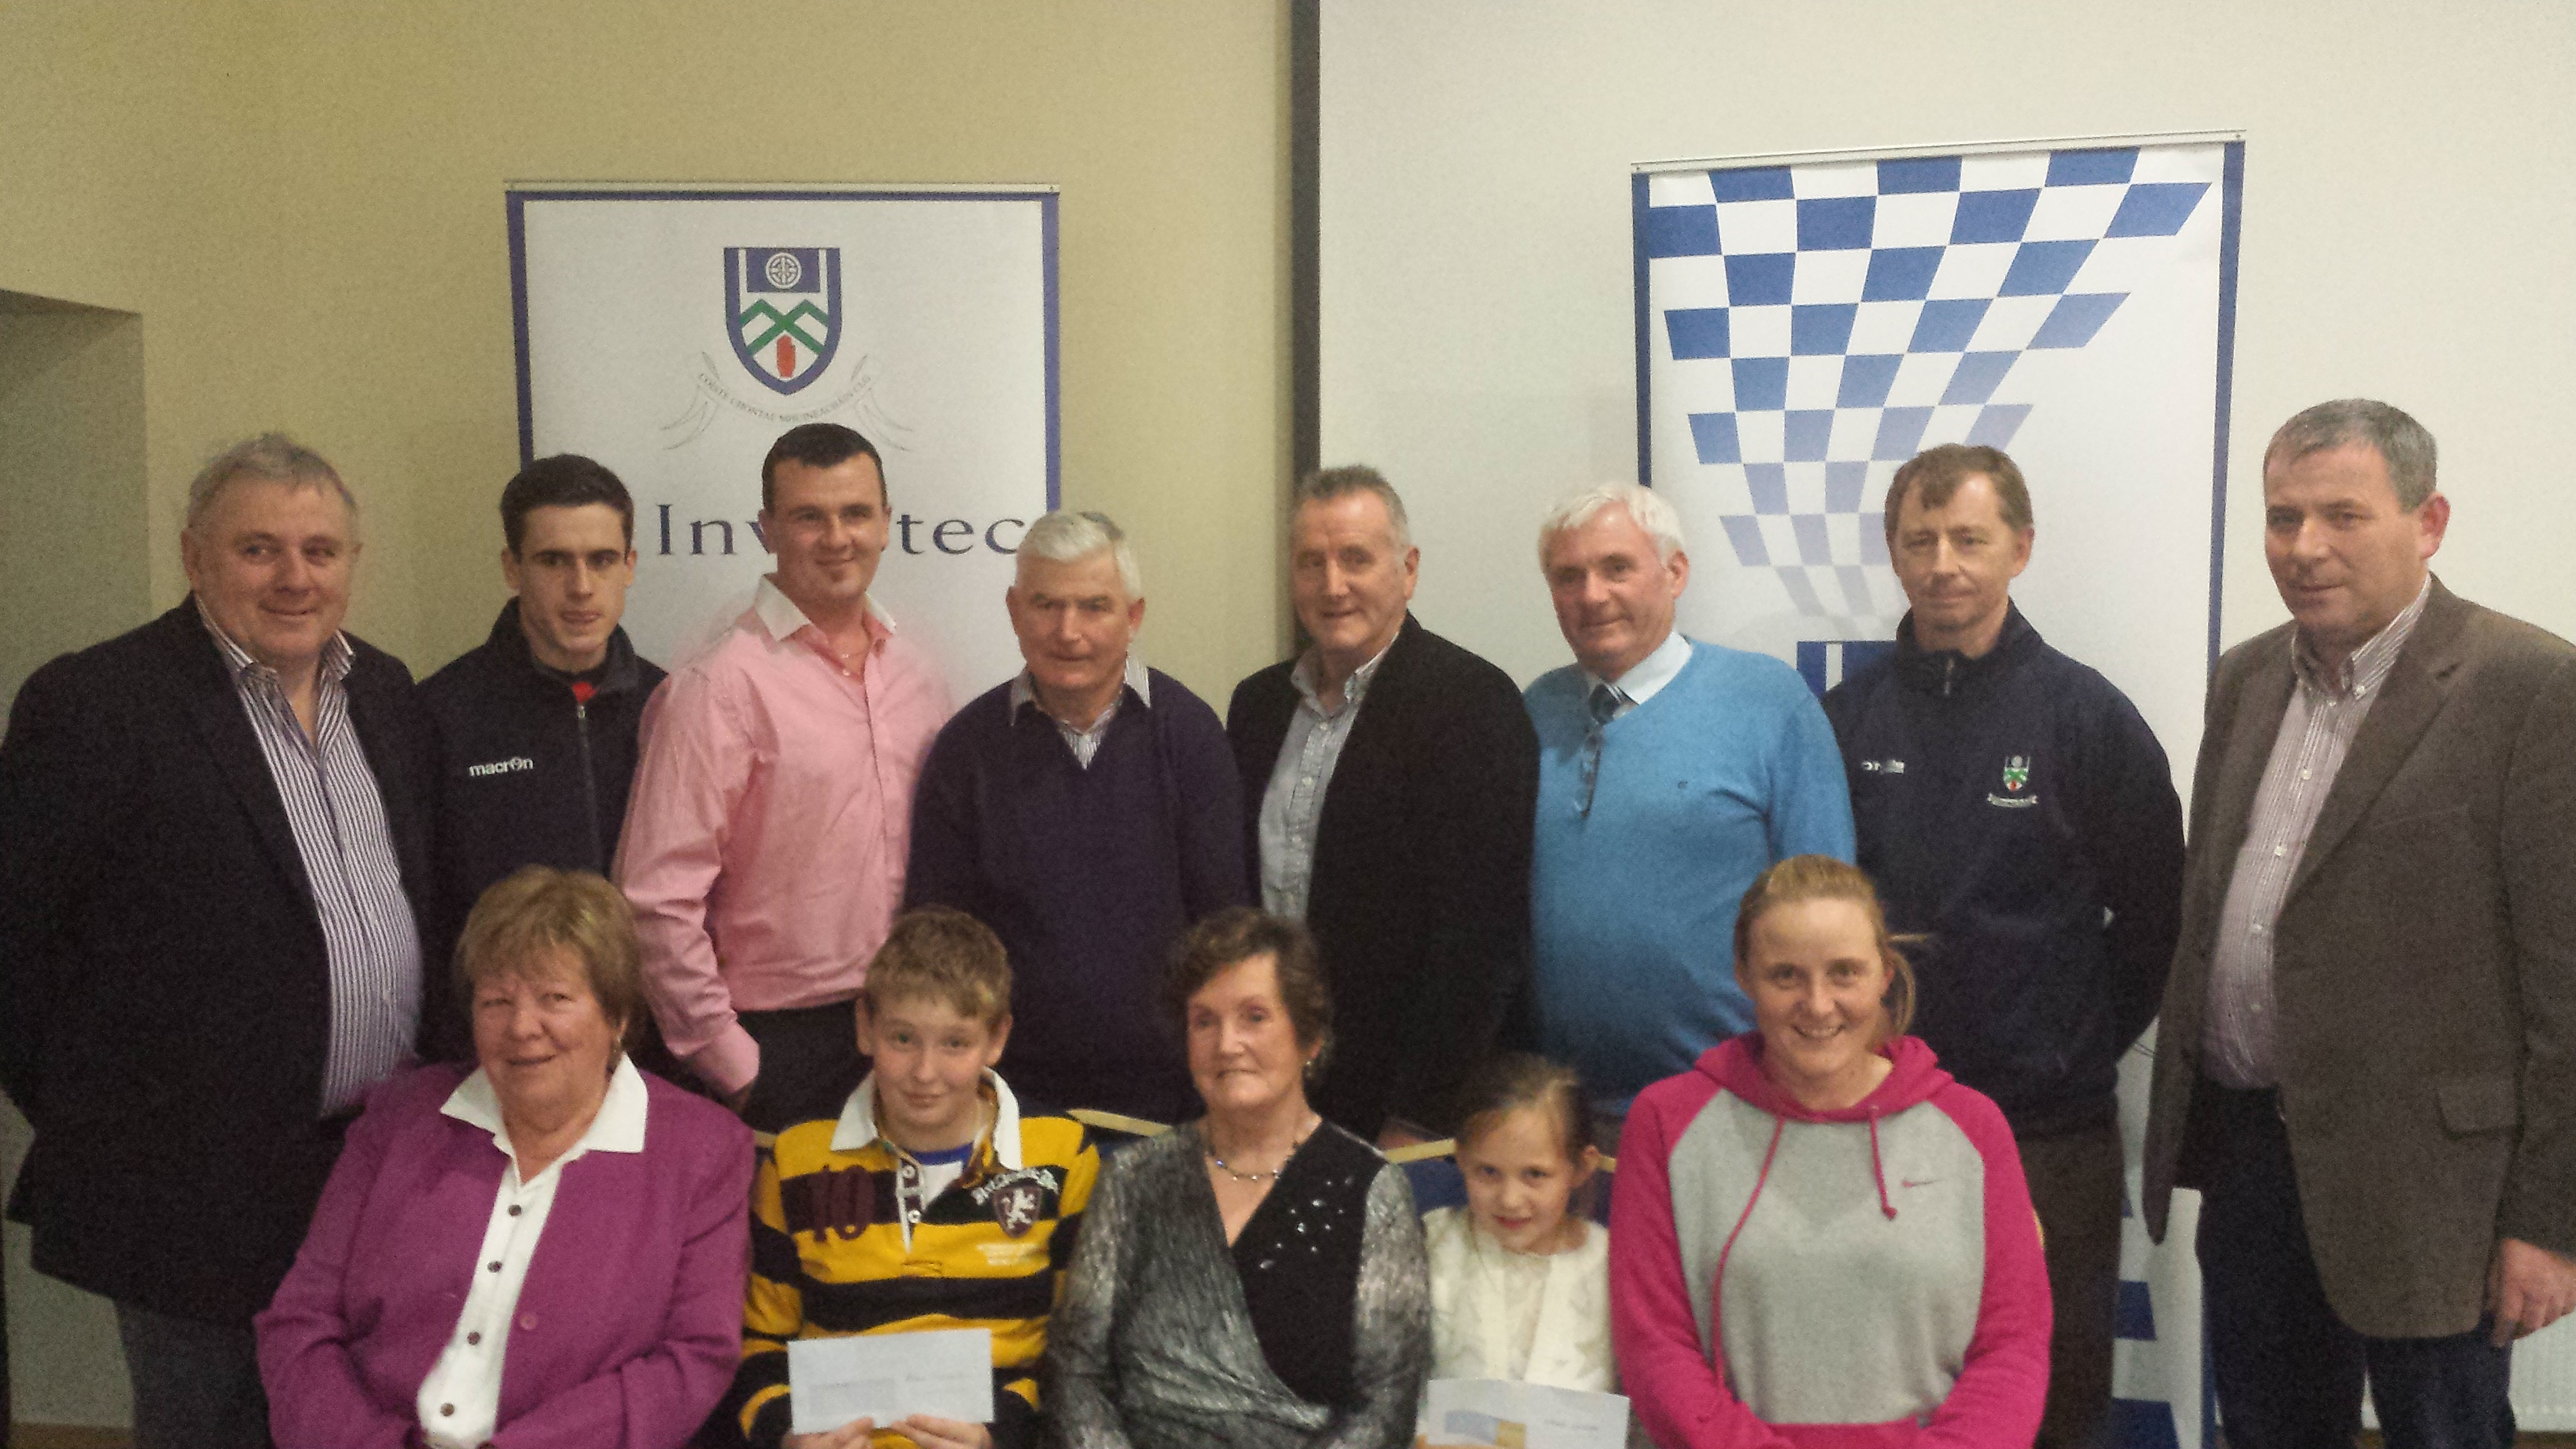 Club Monaghan 2013 Half Time Draw Presentation